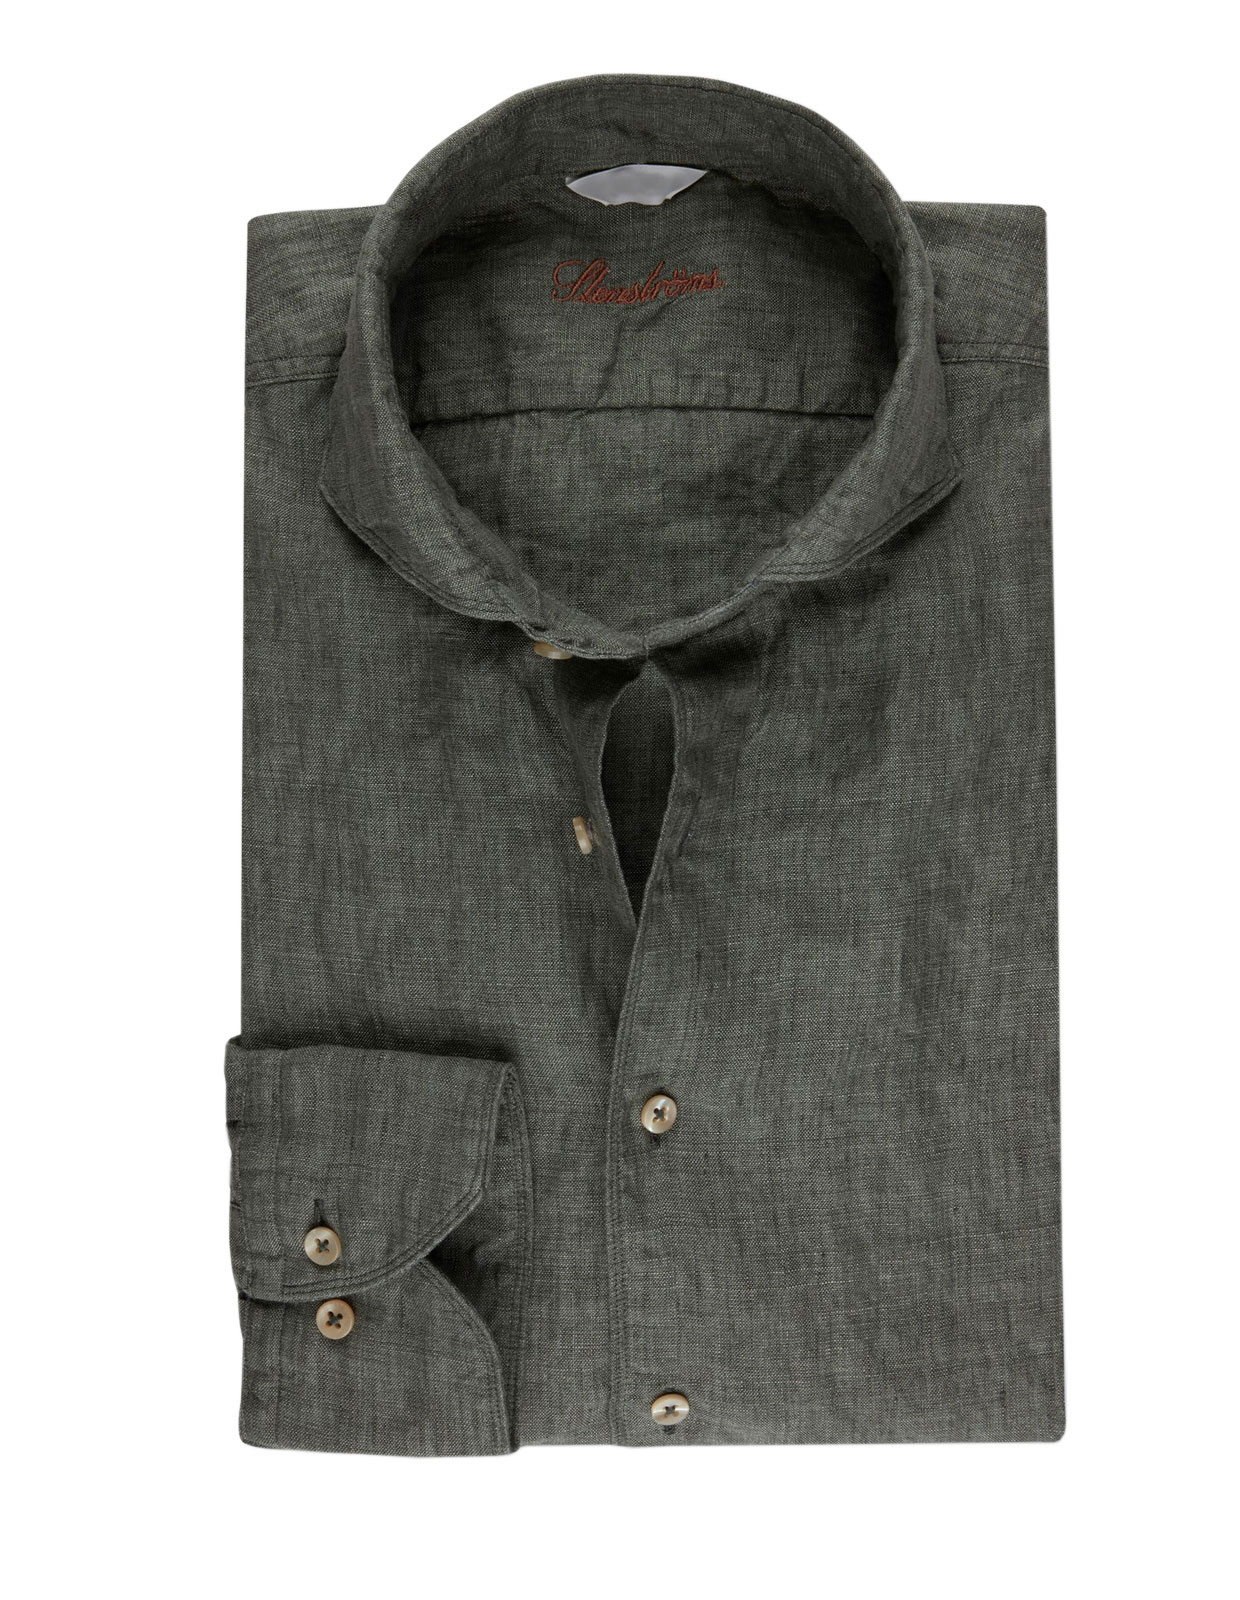 Fitted Body Linen Shirt Olive Green